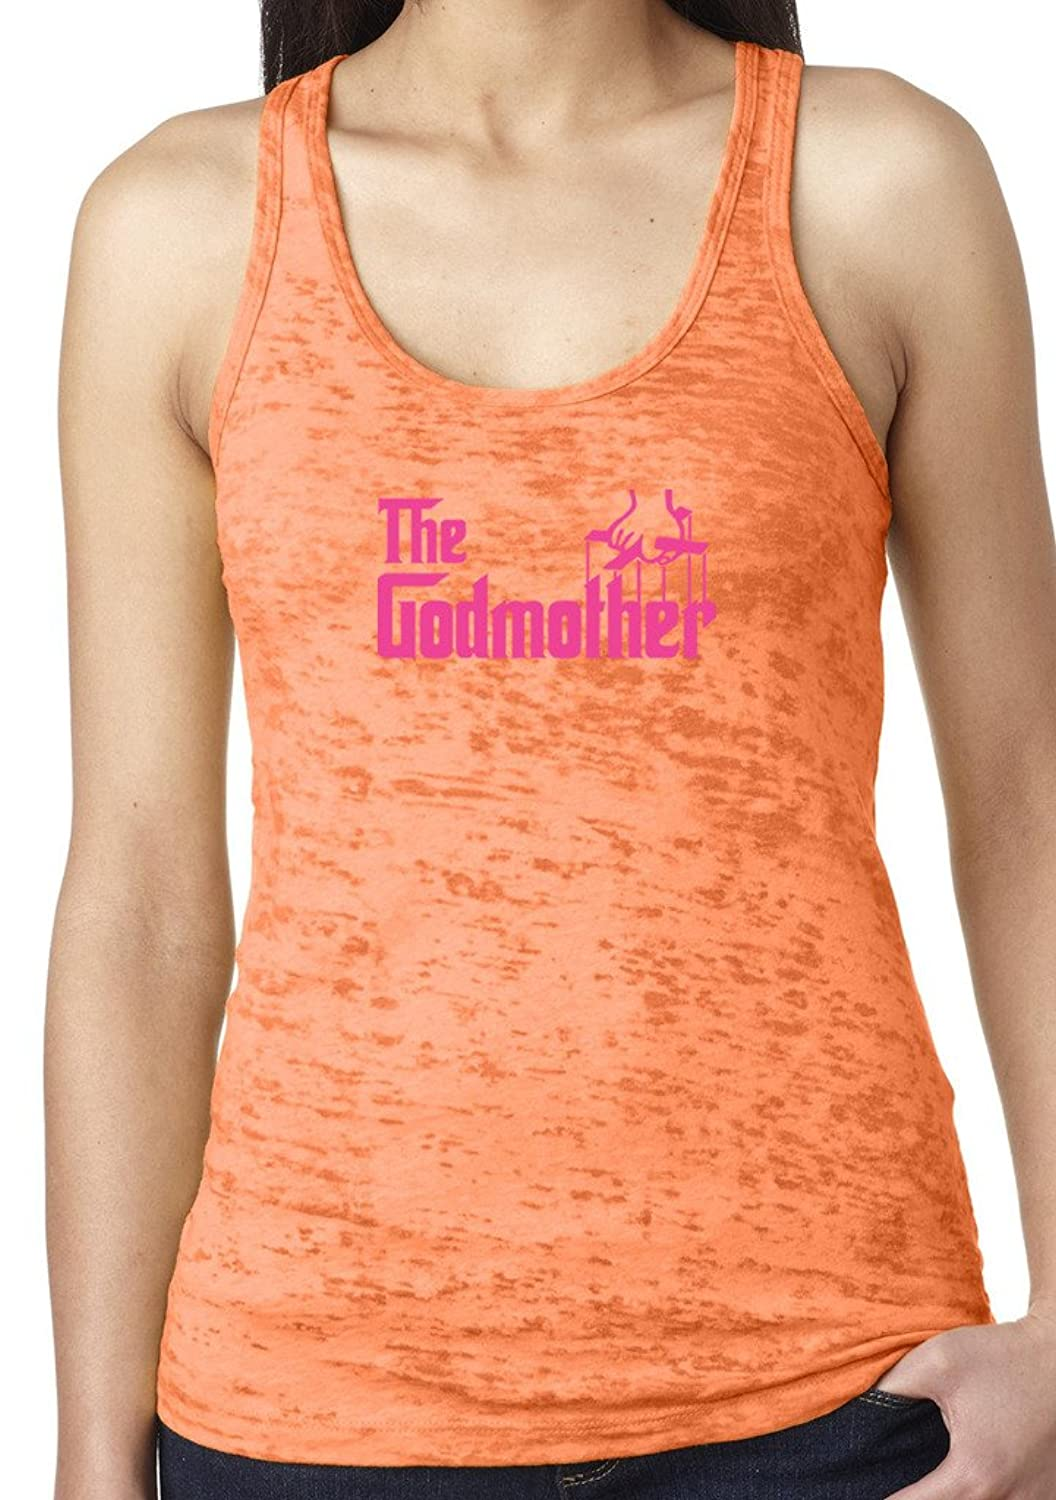 Yoga Clothing For You Ladies The Godmother Burnout Tank Top